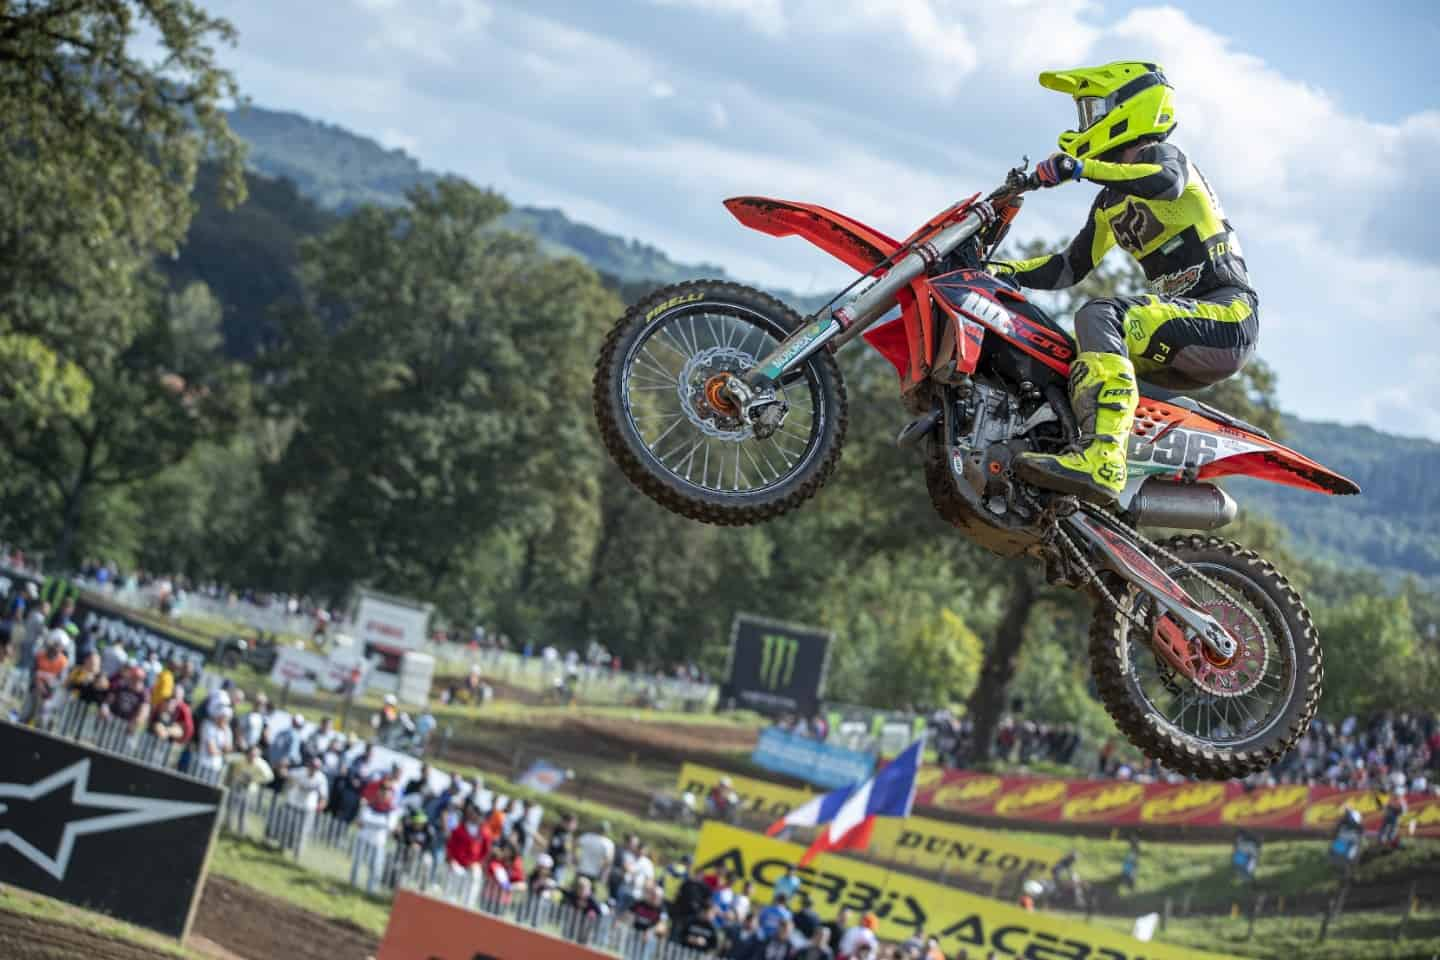 PM WZ Racing - MXGP of France - Mike Gwerder